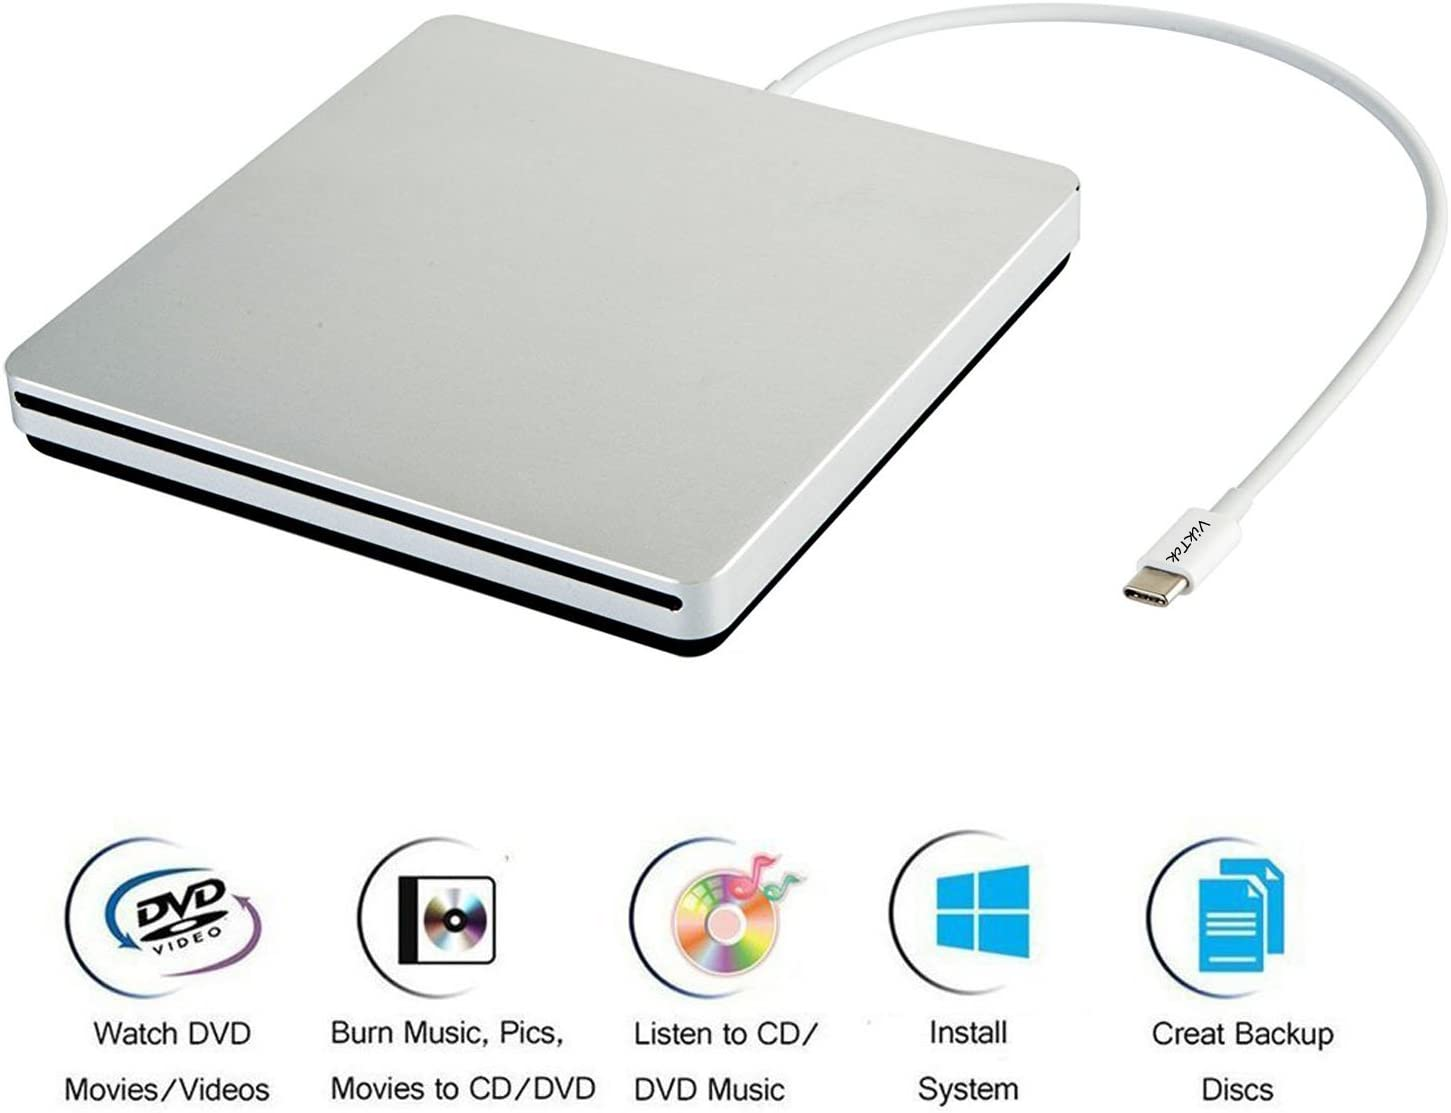 VikTck USB-C Superdrive External DVD/CD Reader and DVD/CD Burner for Apple-MacBook Air/Pro/iMac/Mini/MacBook Pro/ASUS/ASUS/DELL Latitude with USB-C Port Plug and Play(Silver)